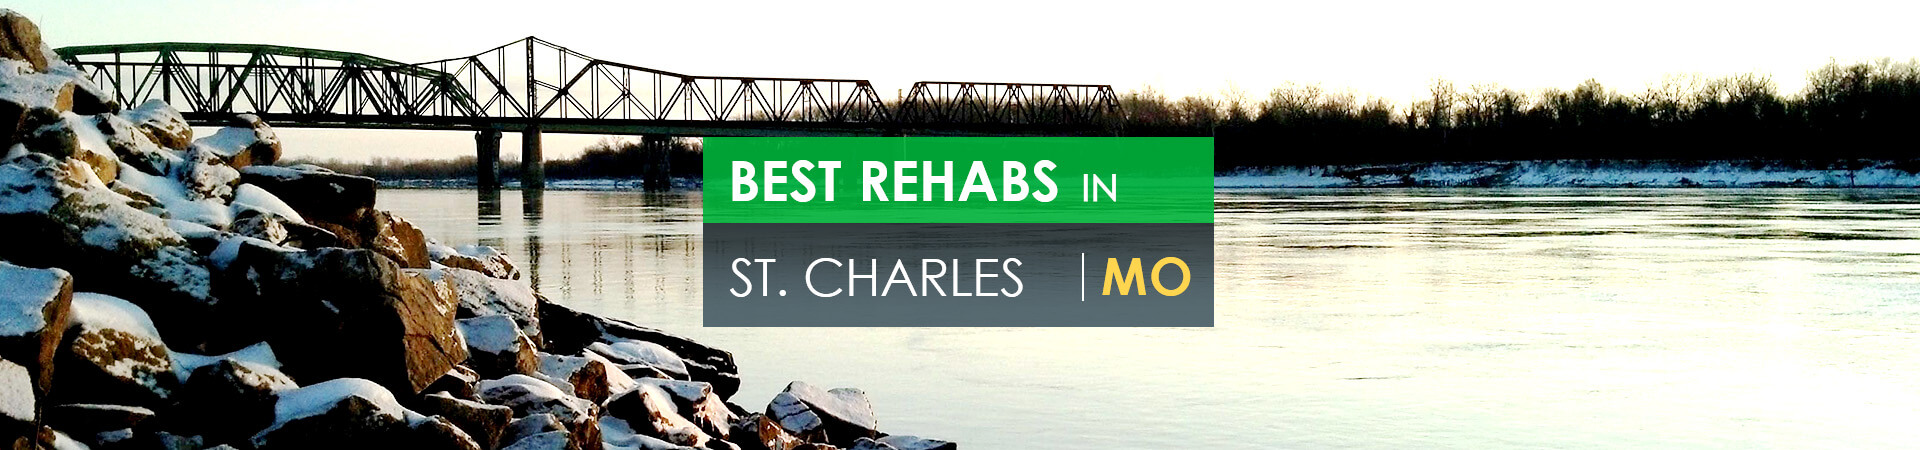 Best rehabs in St. Charles, MO